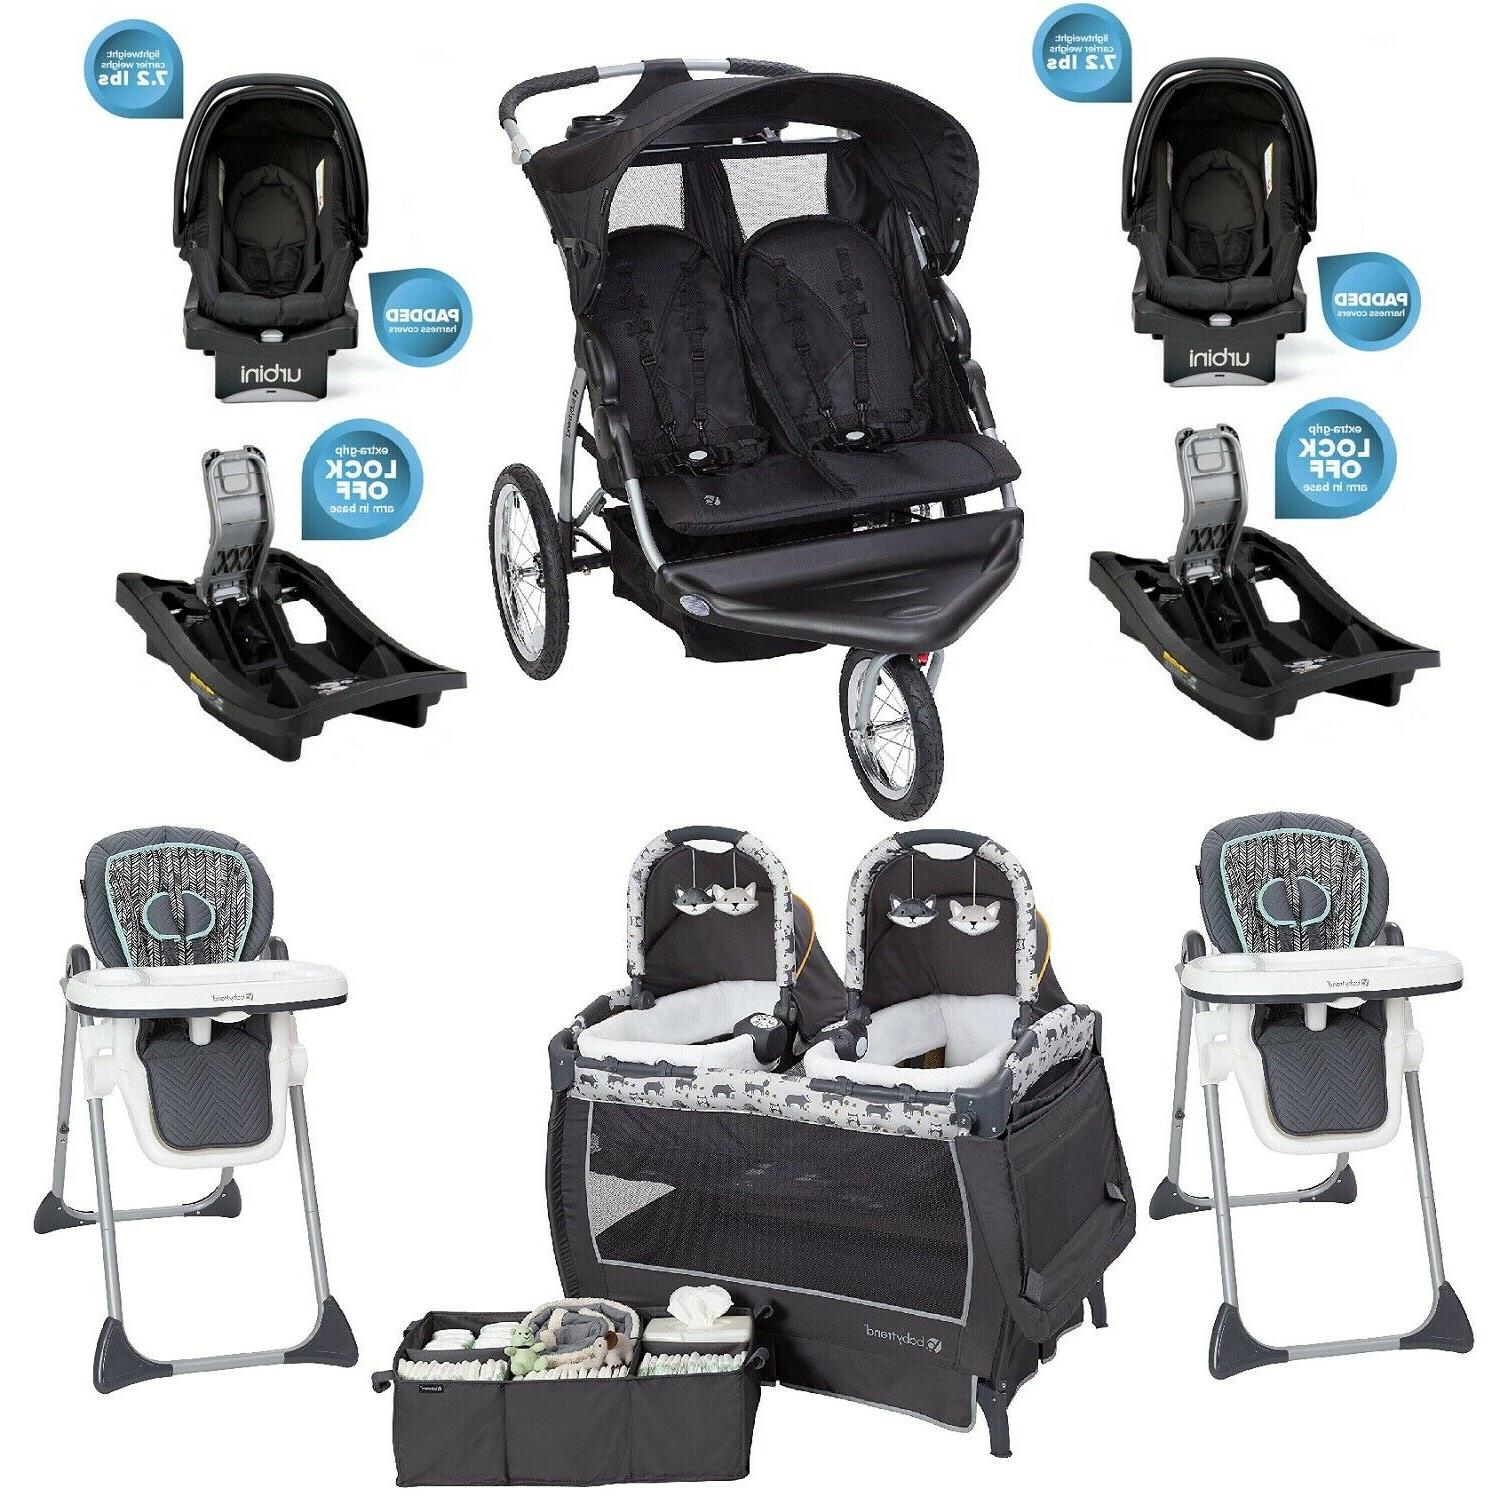 Baby Boy Double Stroller 2 Car Seats Two High Chairs Playard